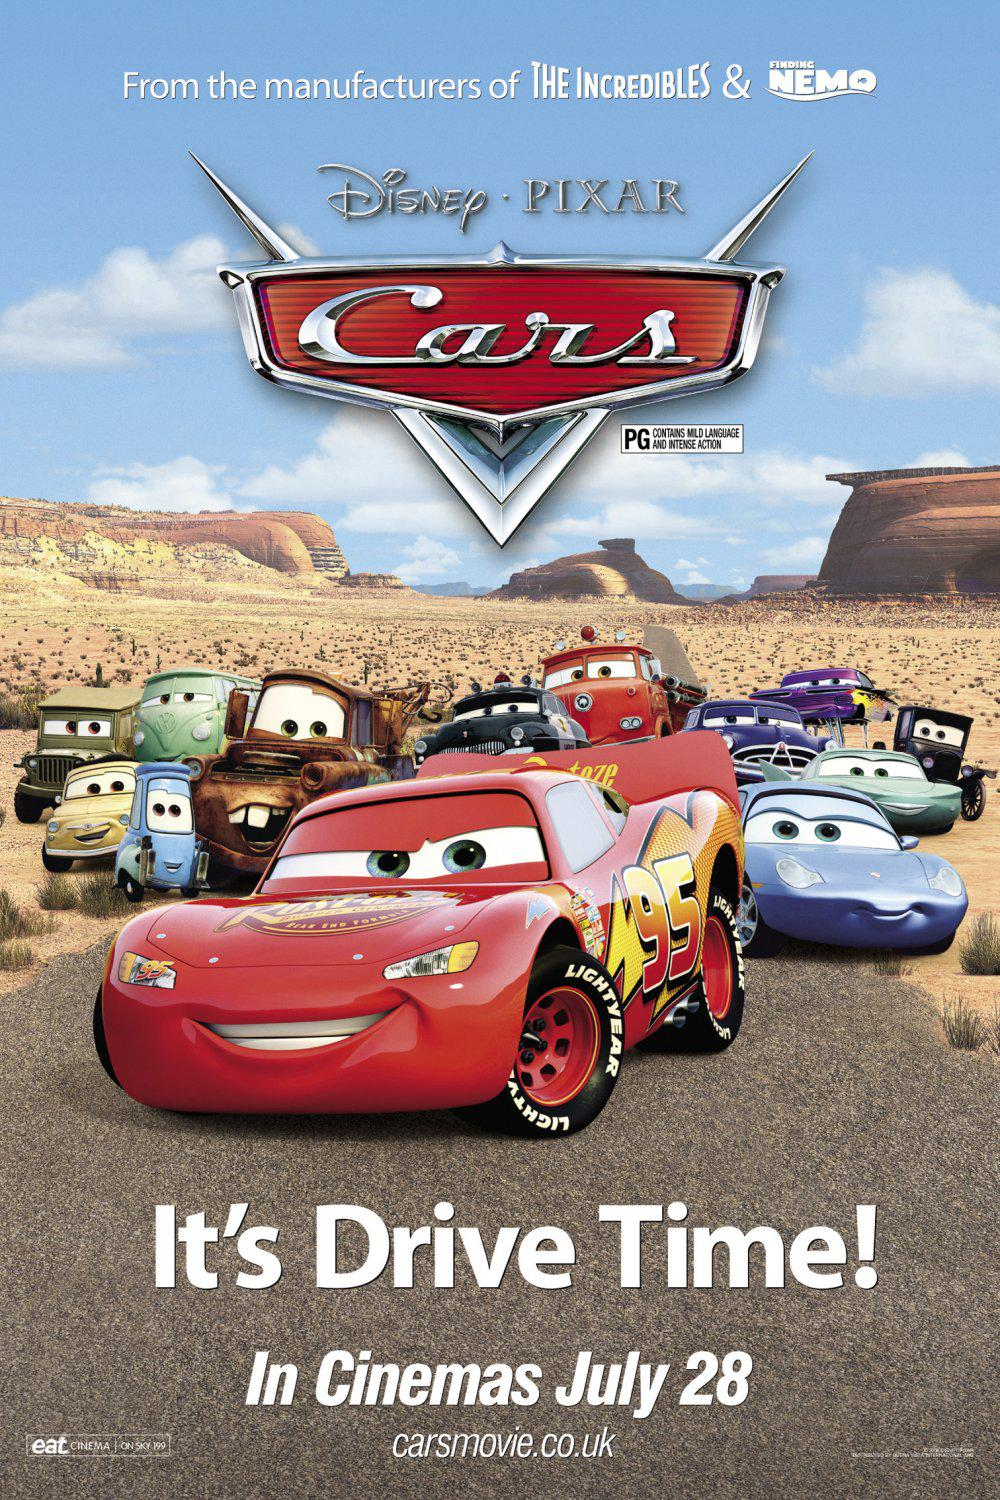 Cars - Disney Pixar animated film poster - it's Drive Time